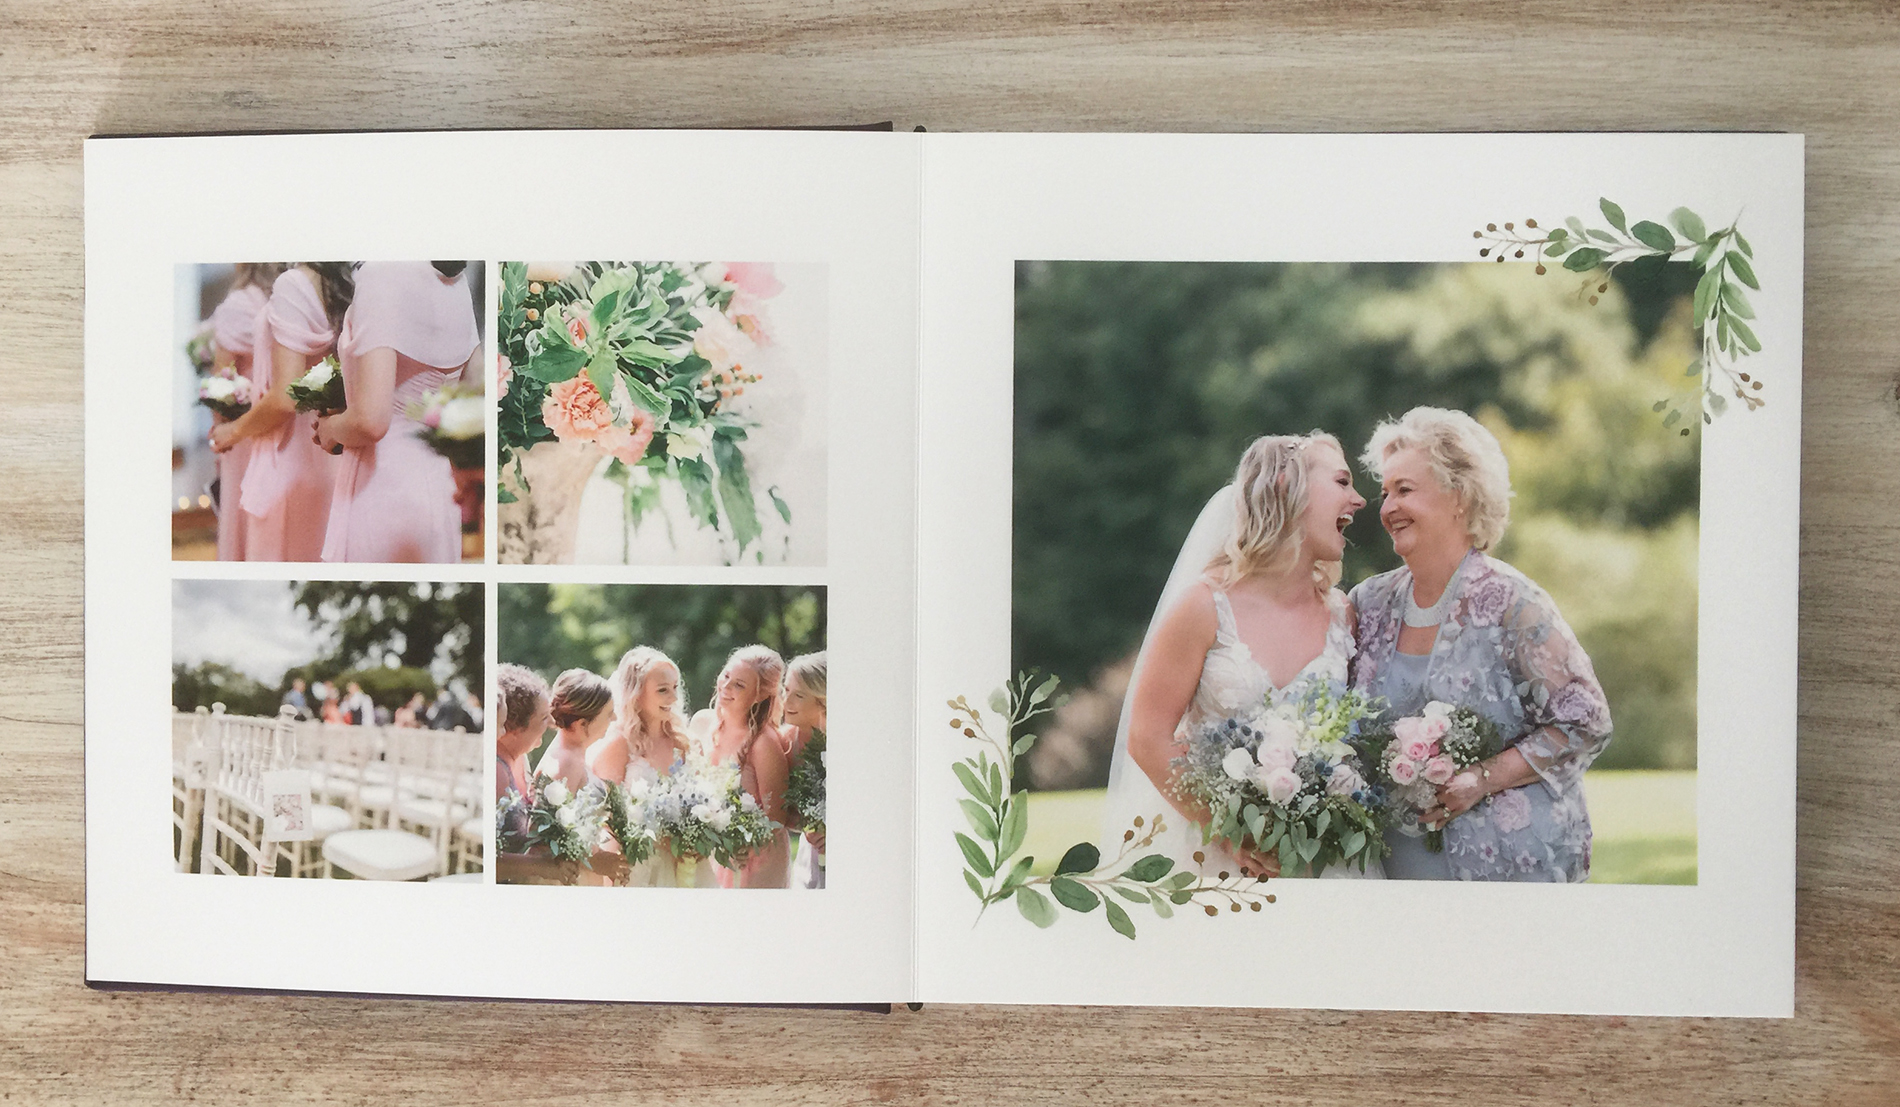 Create Your Own Wedding Photo Album and Save Money